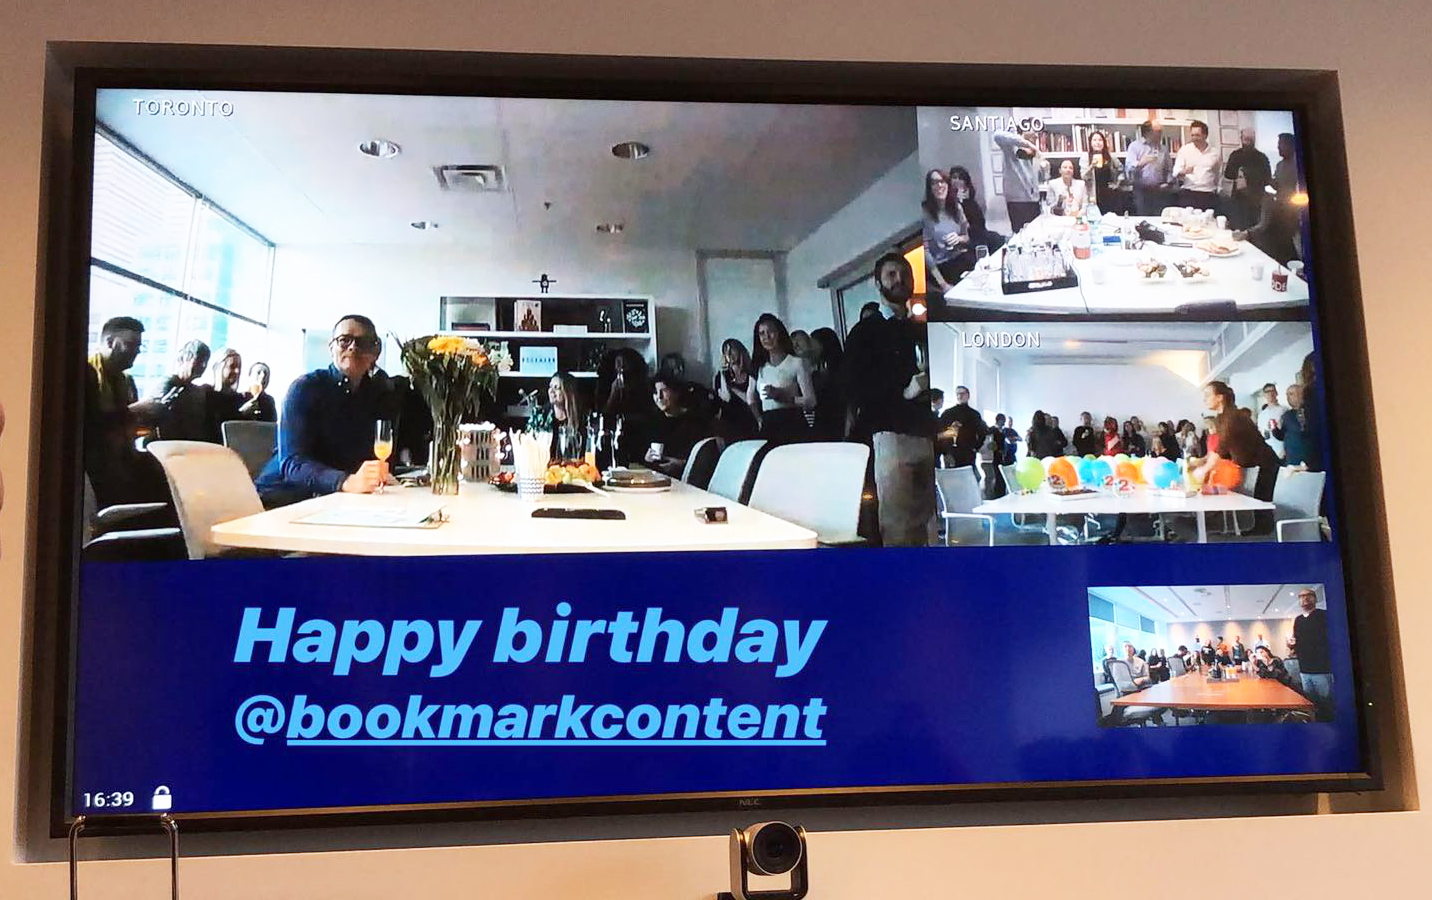 bookmark 2 year anniversary video conference between offices